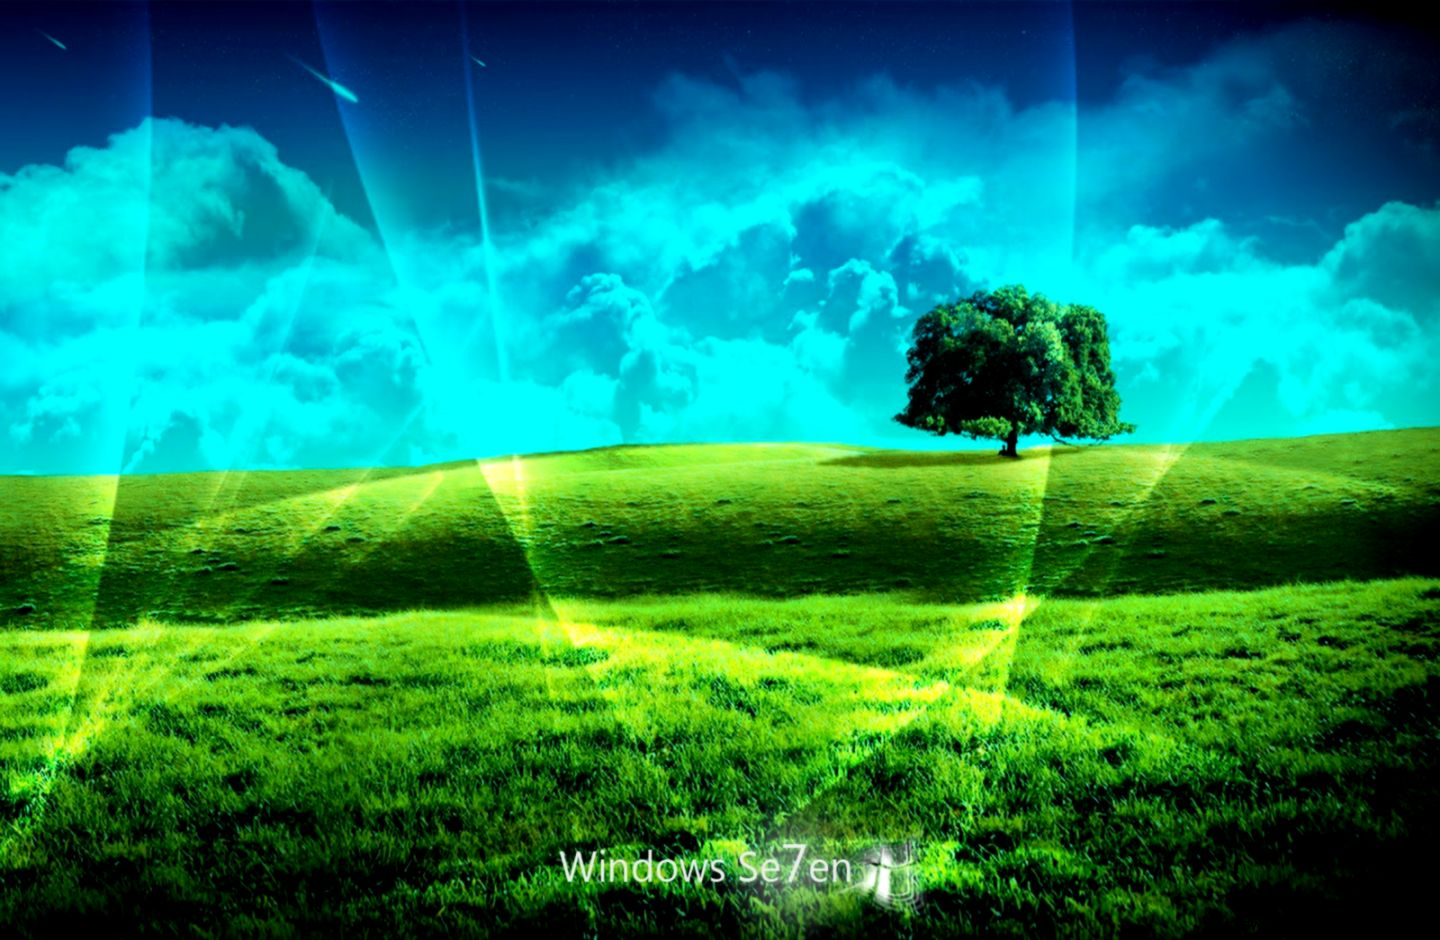 Desktop Wallpaper 3d Animation For Windows 7  Search Results